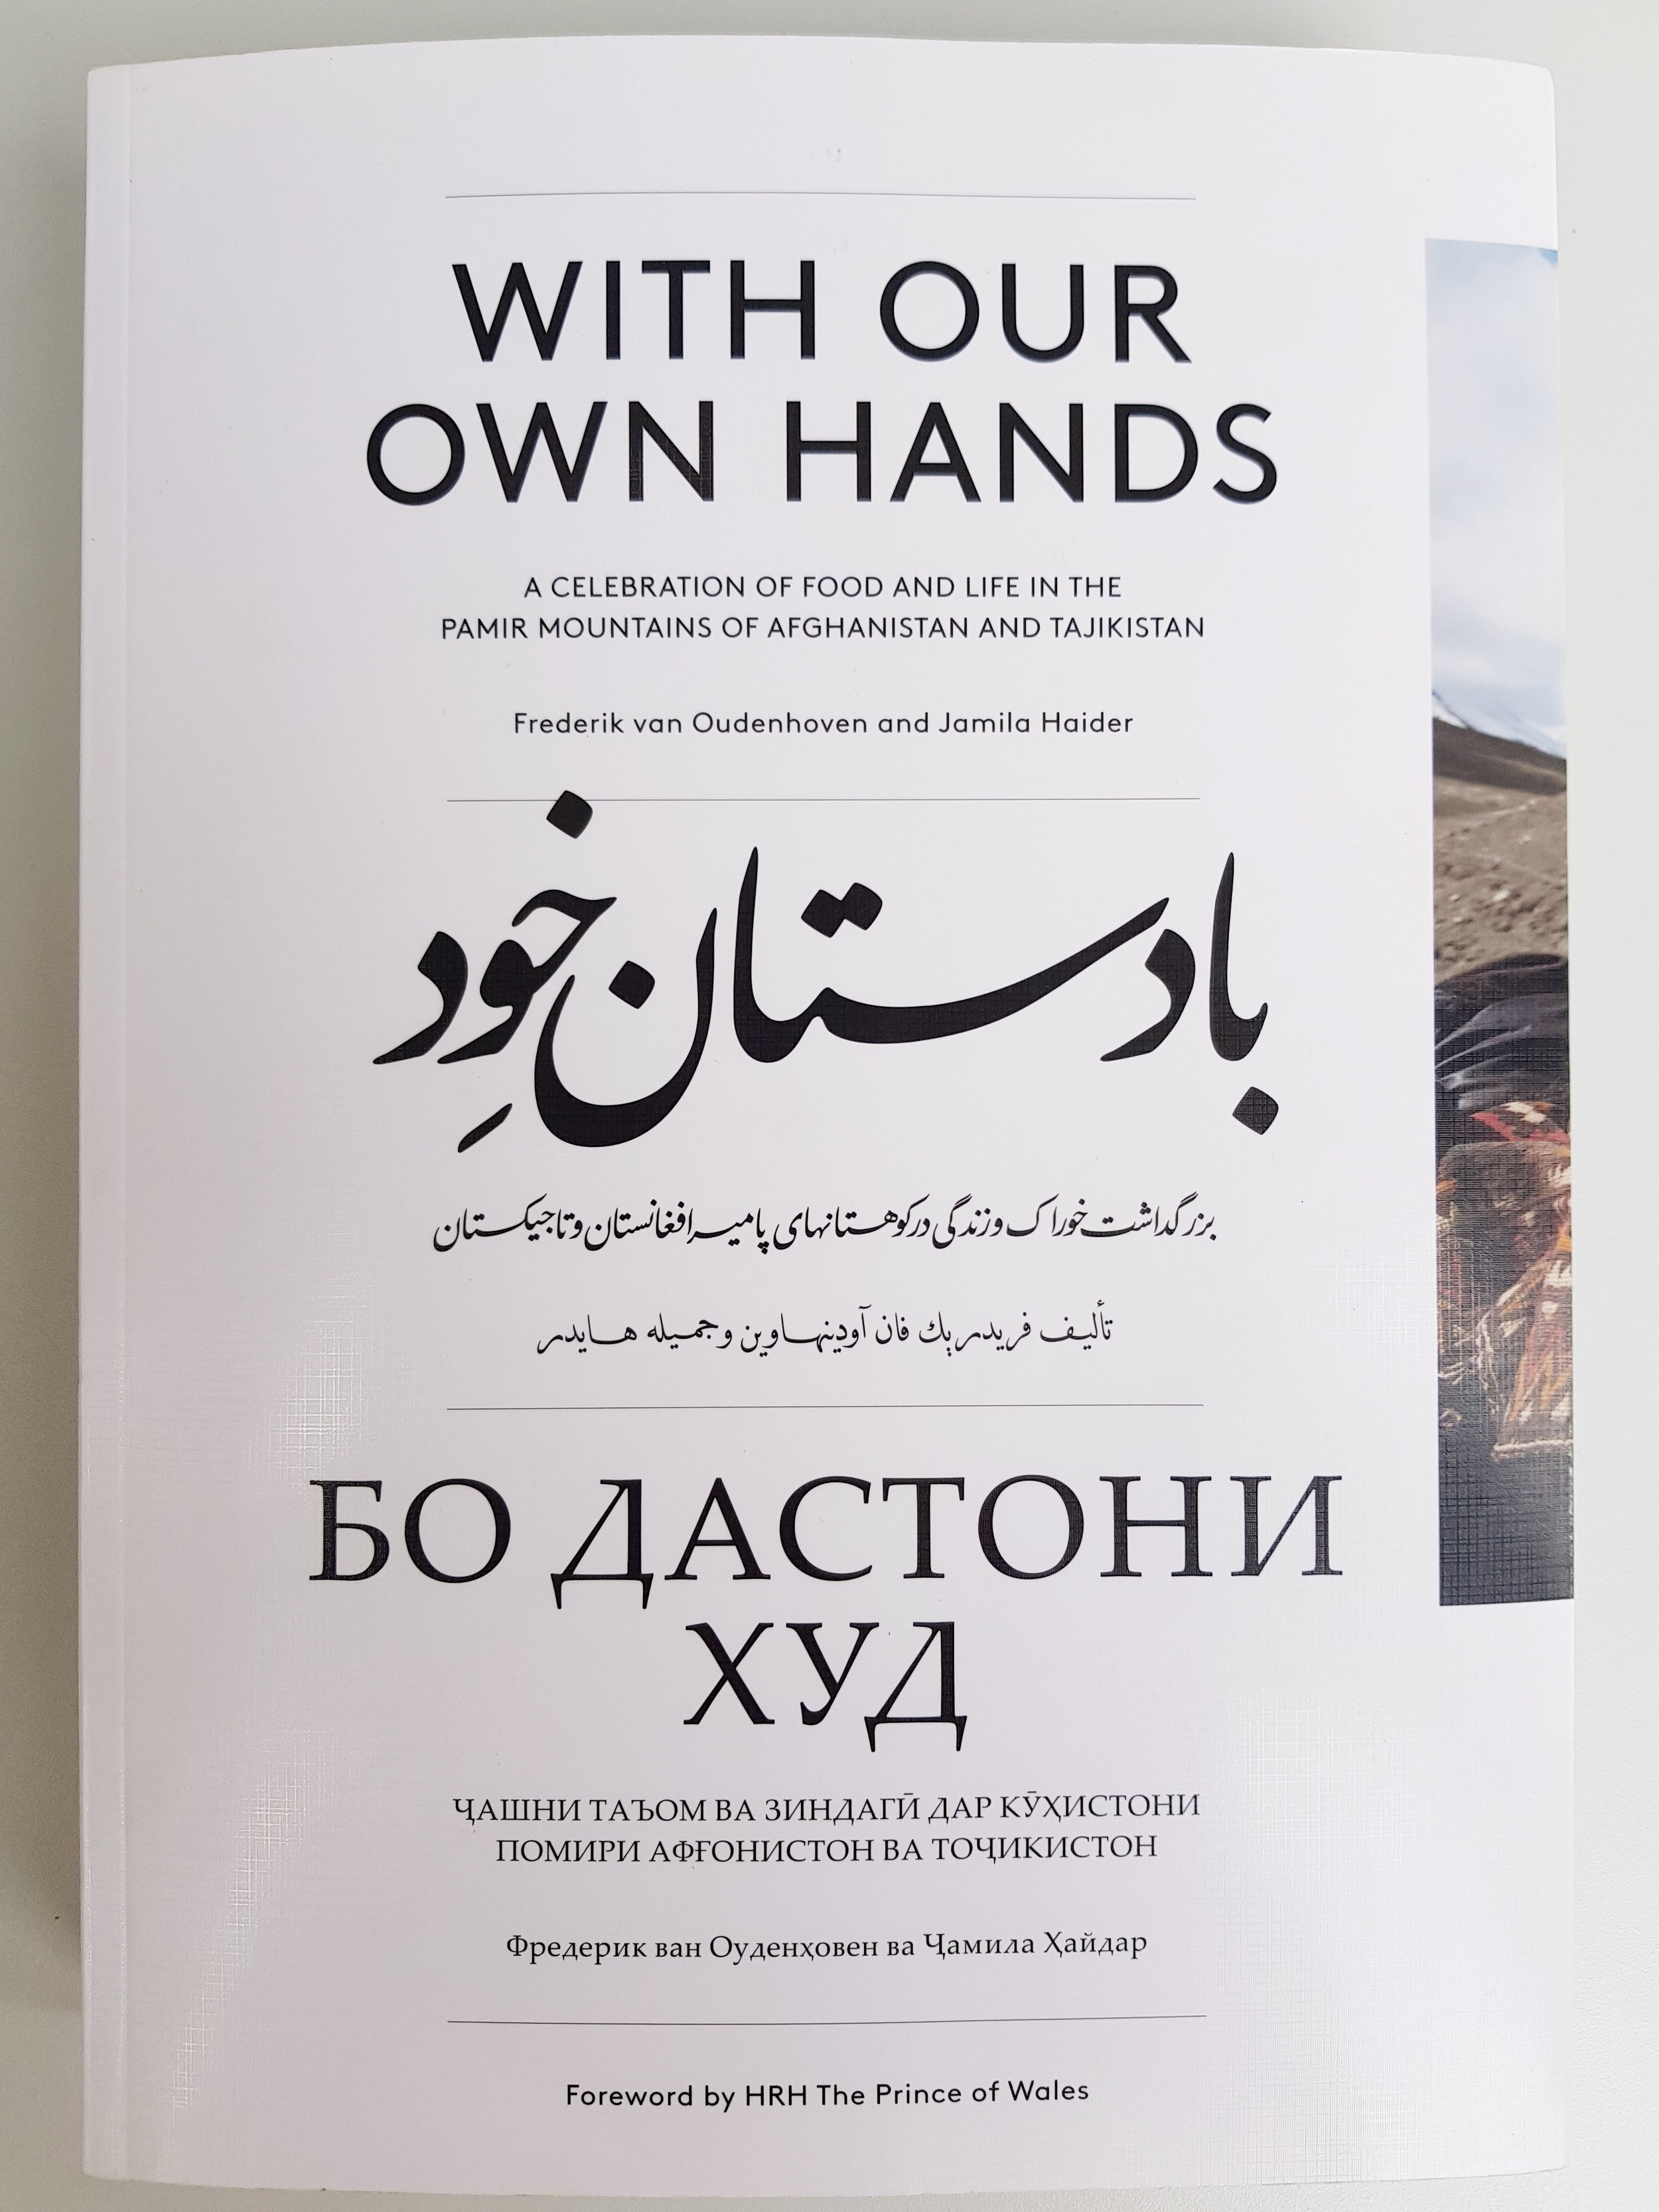 With Our Own Hands - With Our Own Hands tells, for the first time, the cultural and agricultural history of the Afghan and Tajik Pamirs, one of the world's least known and most isolated civilisations. Through the lens of local receipes, essays, stories and poetry, and accompanied by the work of three award-winning photographers, it describes Pamiri food and its origins, people's daily lives, their struggles and celebrations. In a context where poverty, conflicts and political upheaval have made it difficult for people to express and define their identity, food becomes a powerful tool for its survival. Written by Frederik von Oudenhoven & Jamila Haider in English, Arabic and Russian language.